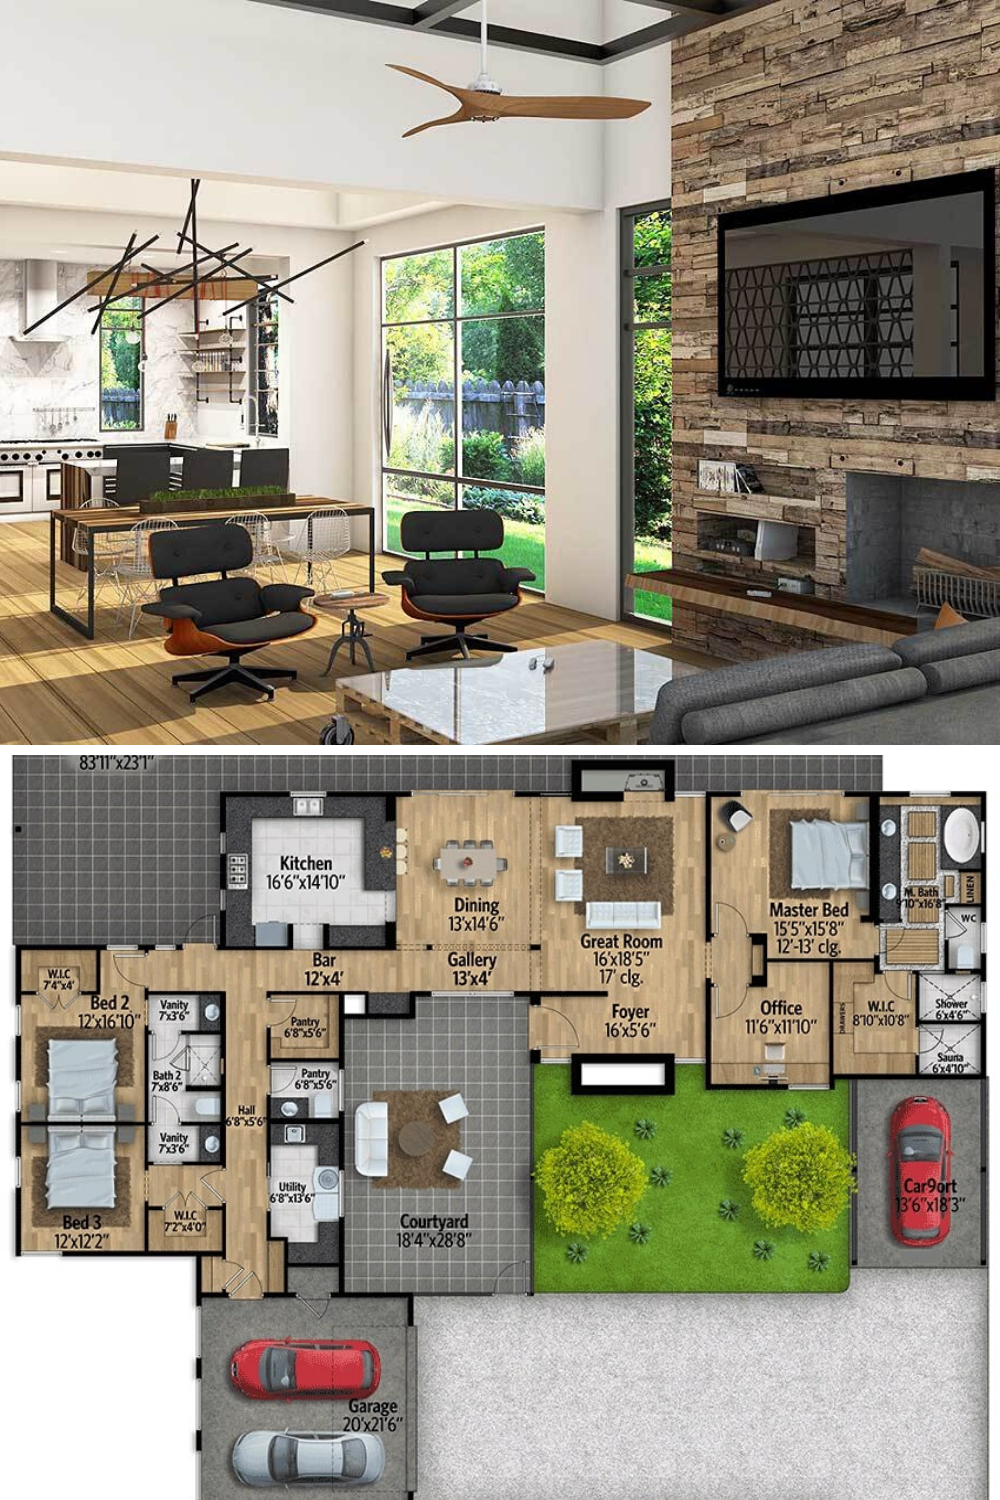 3 Bedroom Single Story Mid Century Modern Home with Courtyard Floor Plan